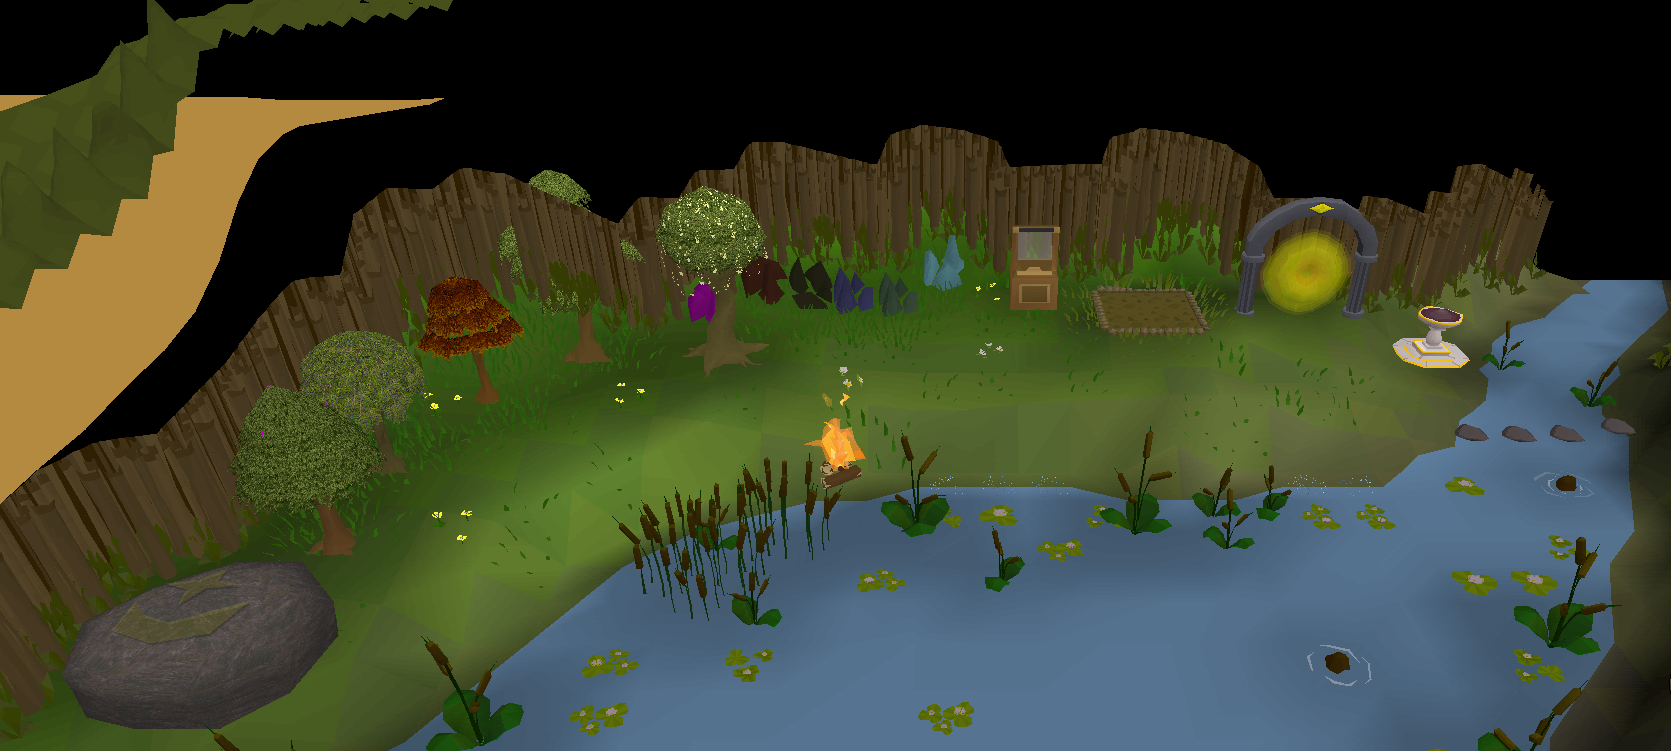 runerealm-sdz-central.png